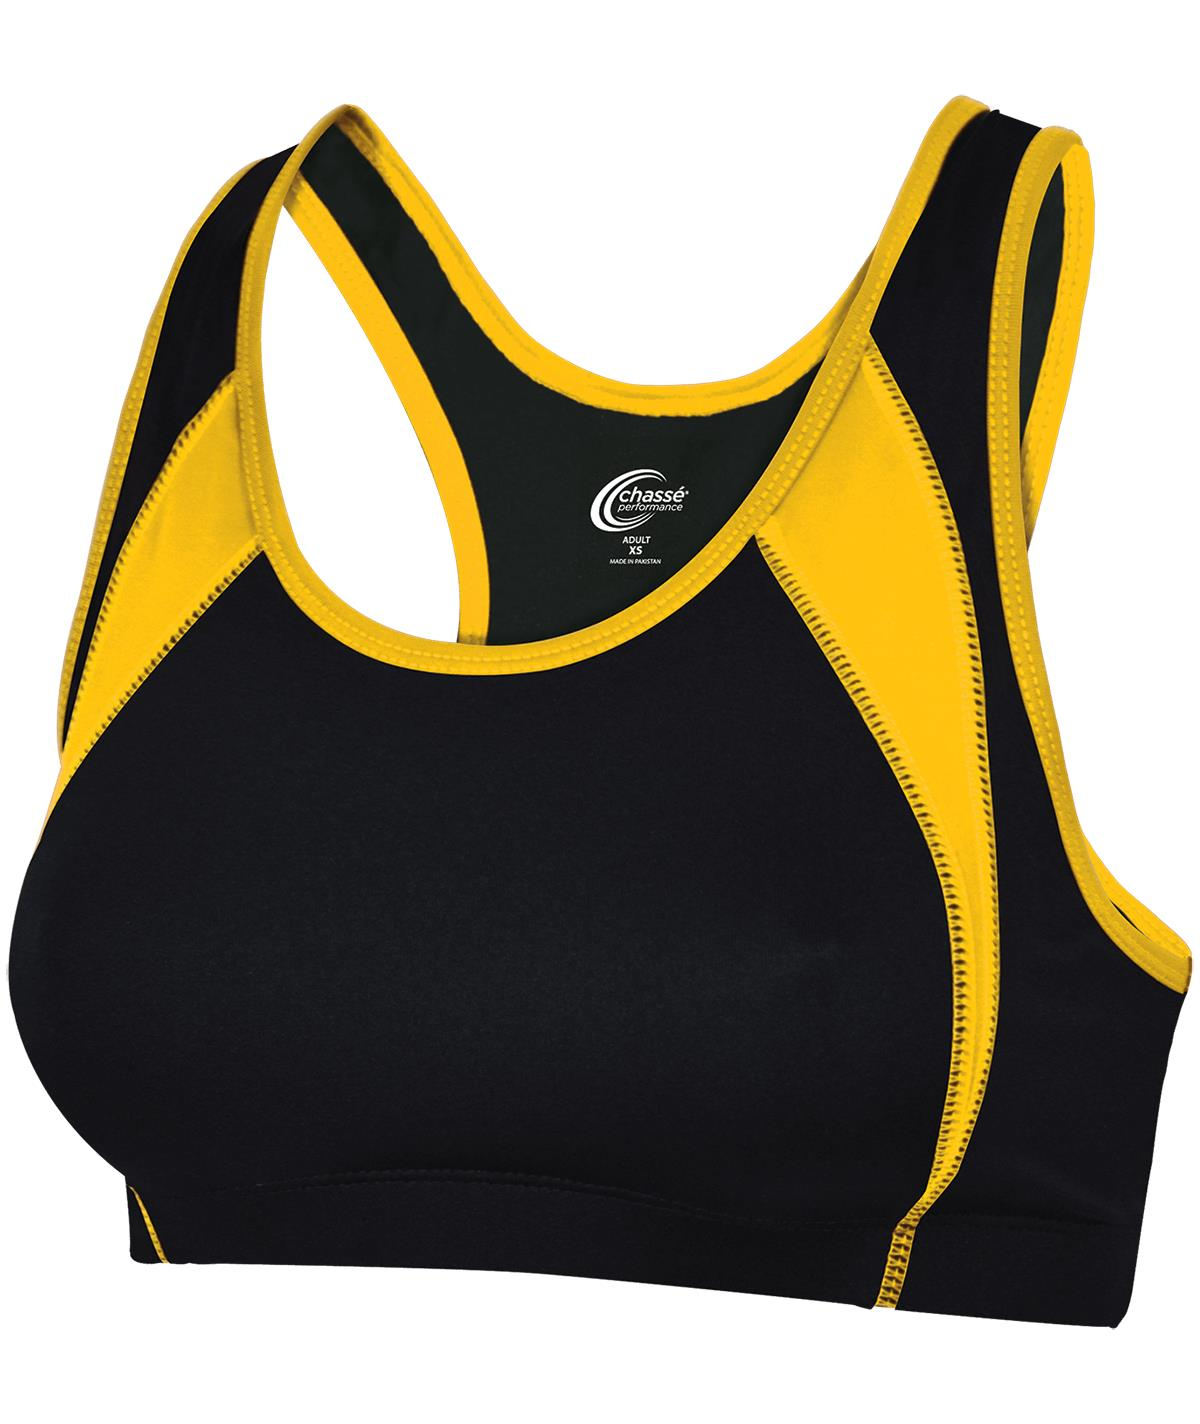 Chassé Performance C-Fuse Sports Bra